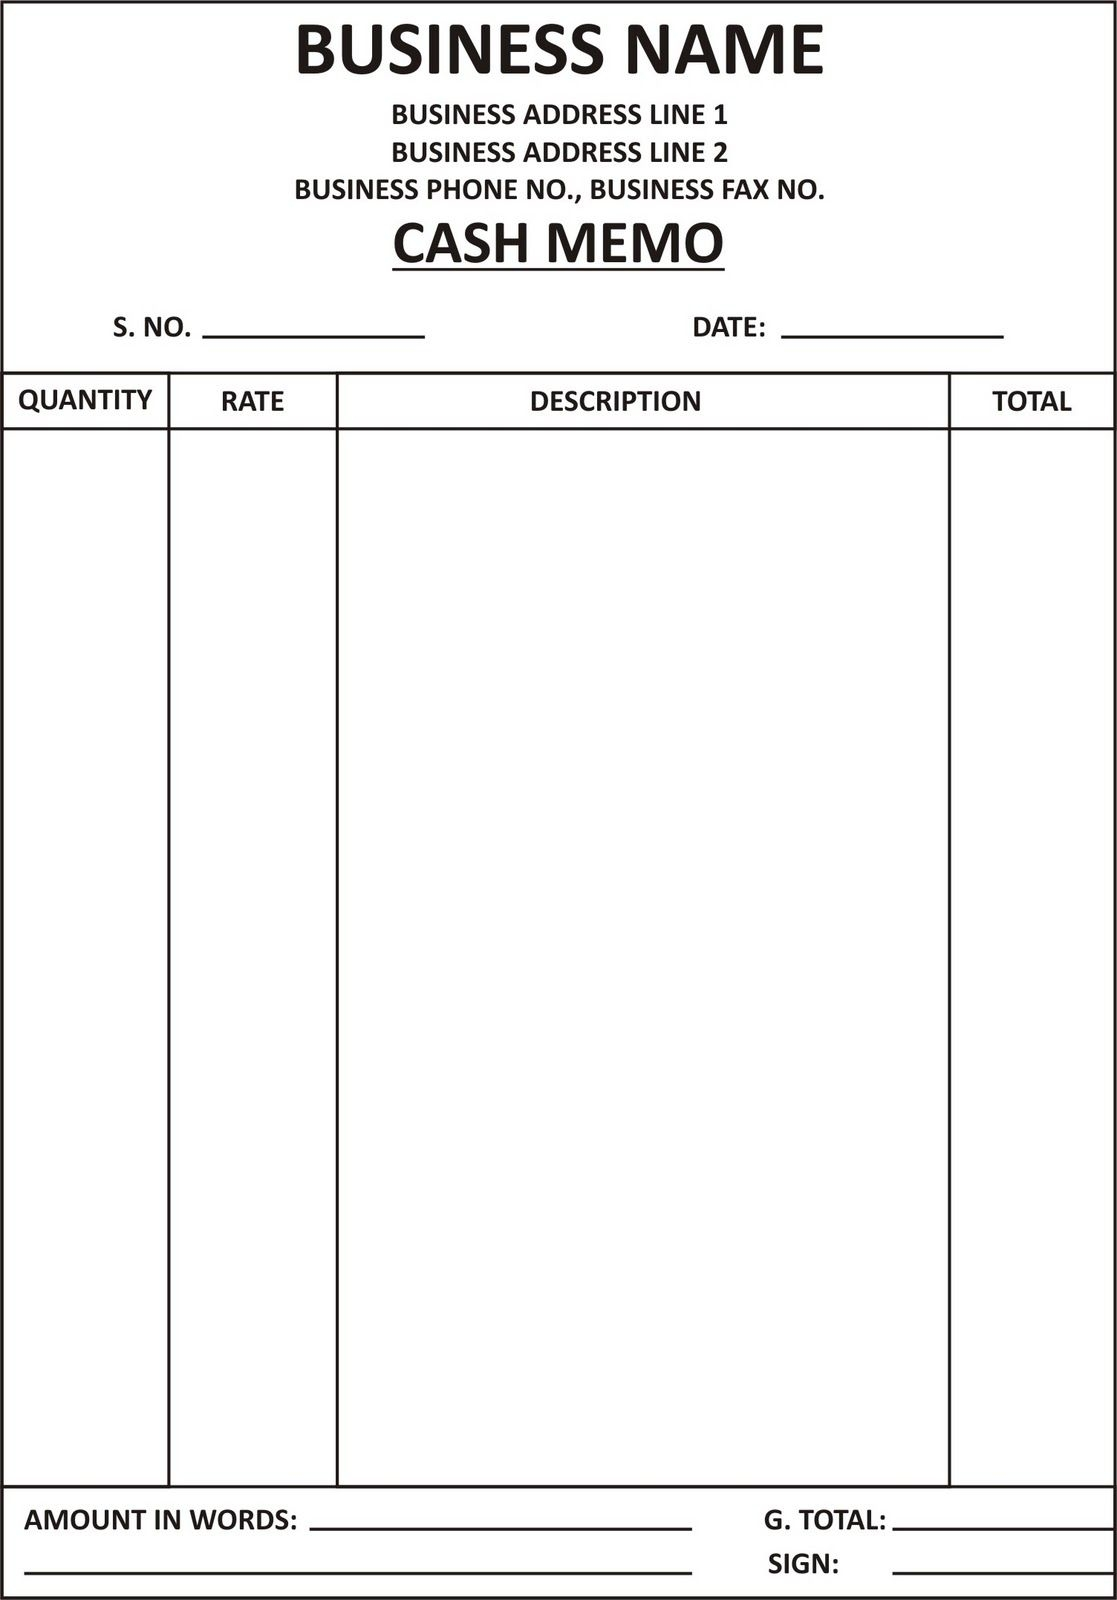 cash bill format submited images pic 2 fly invoice format invoice bill hindi sample